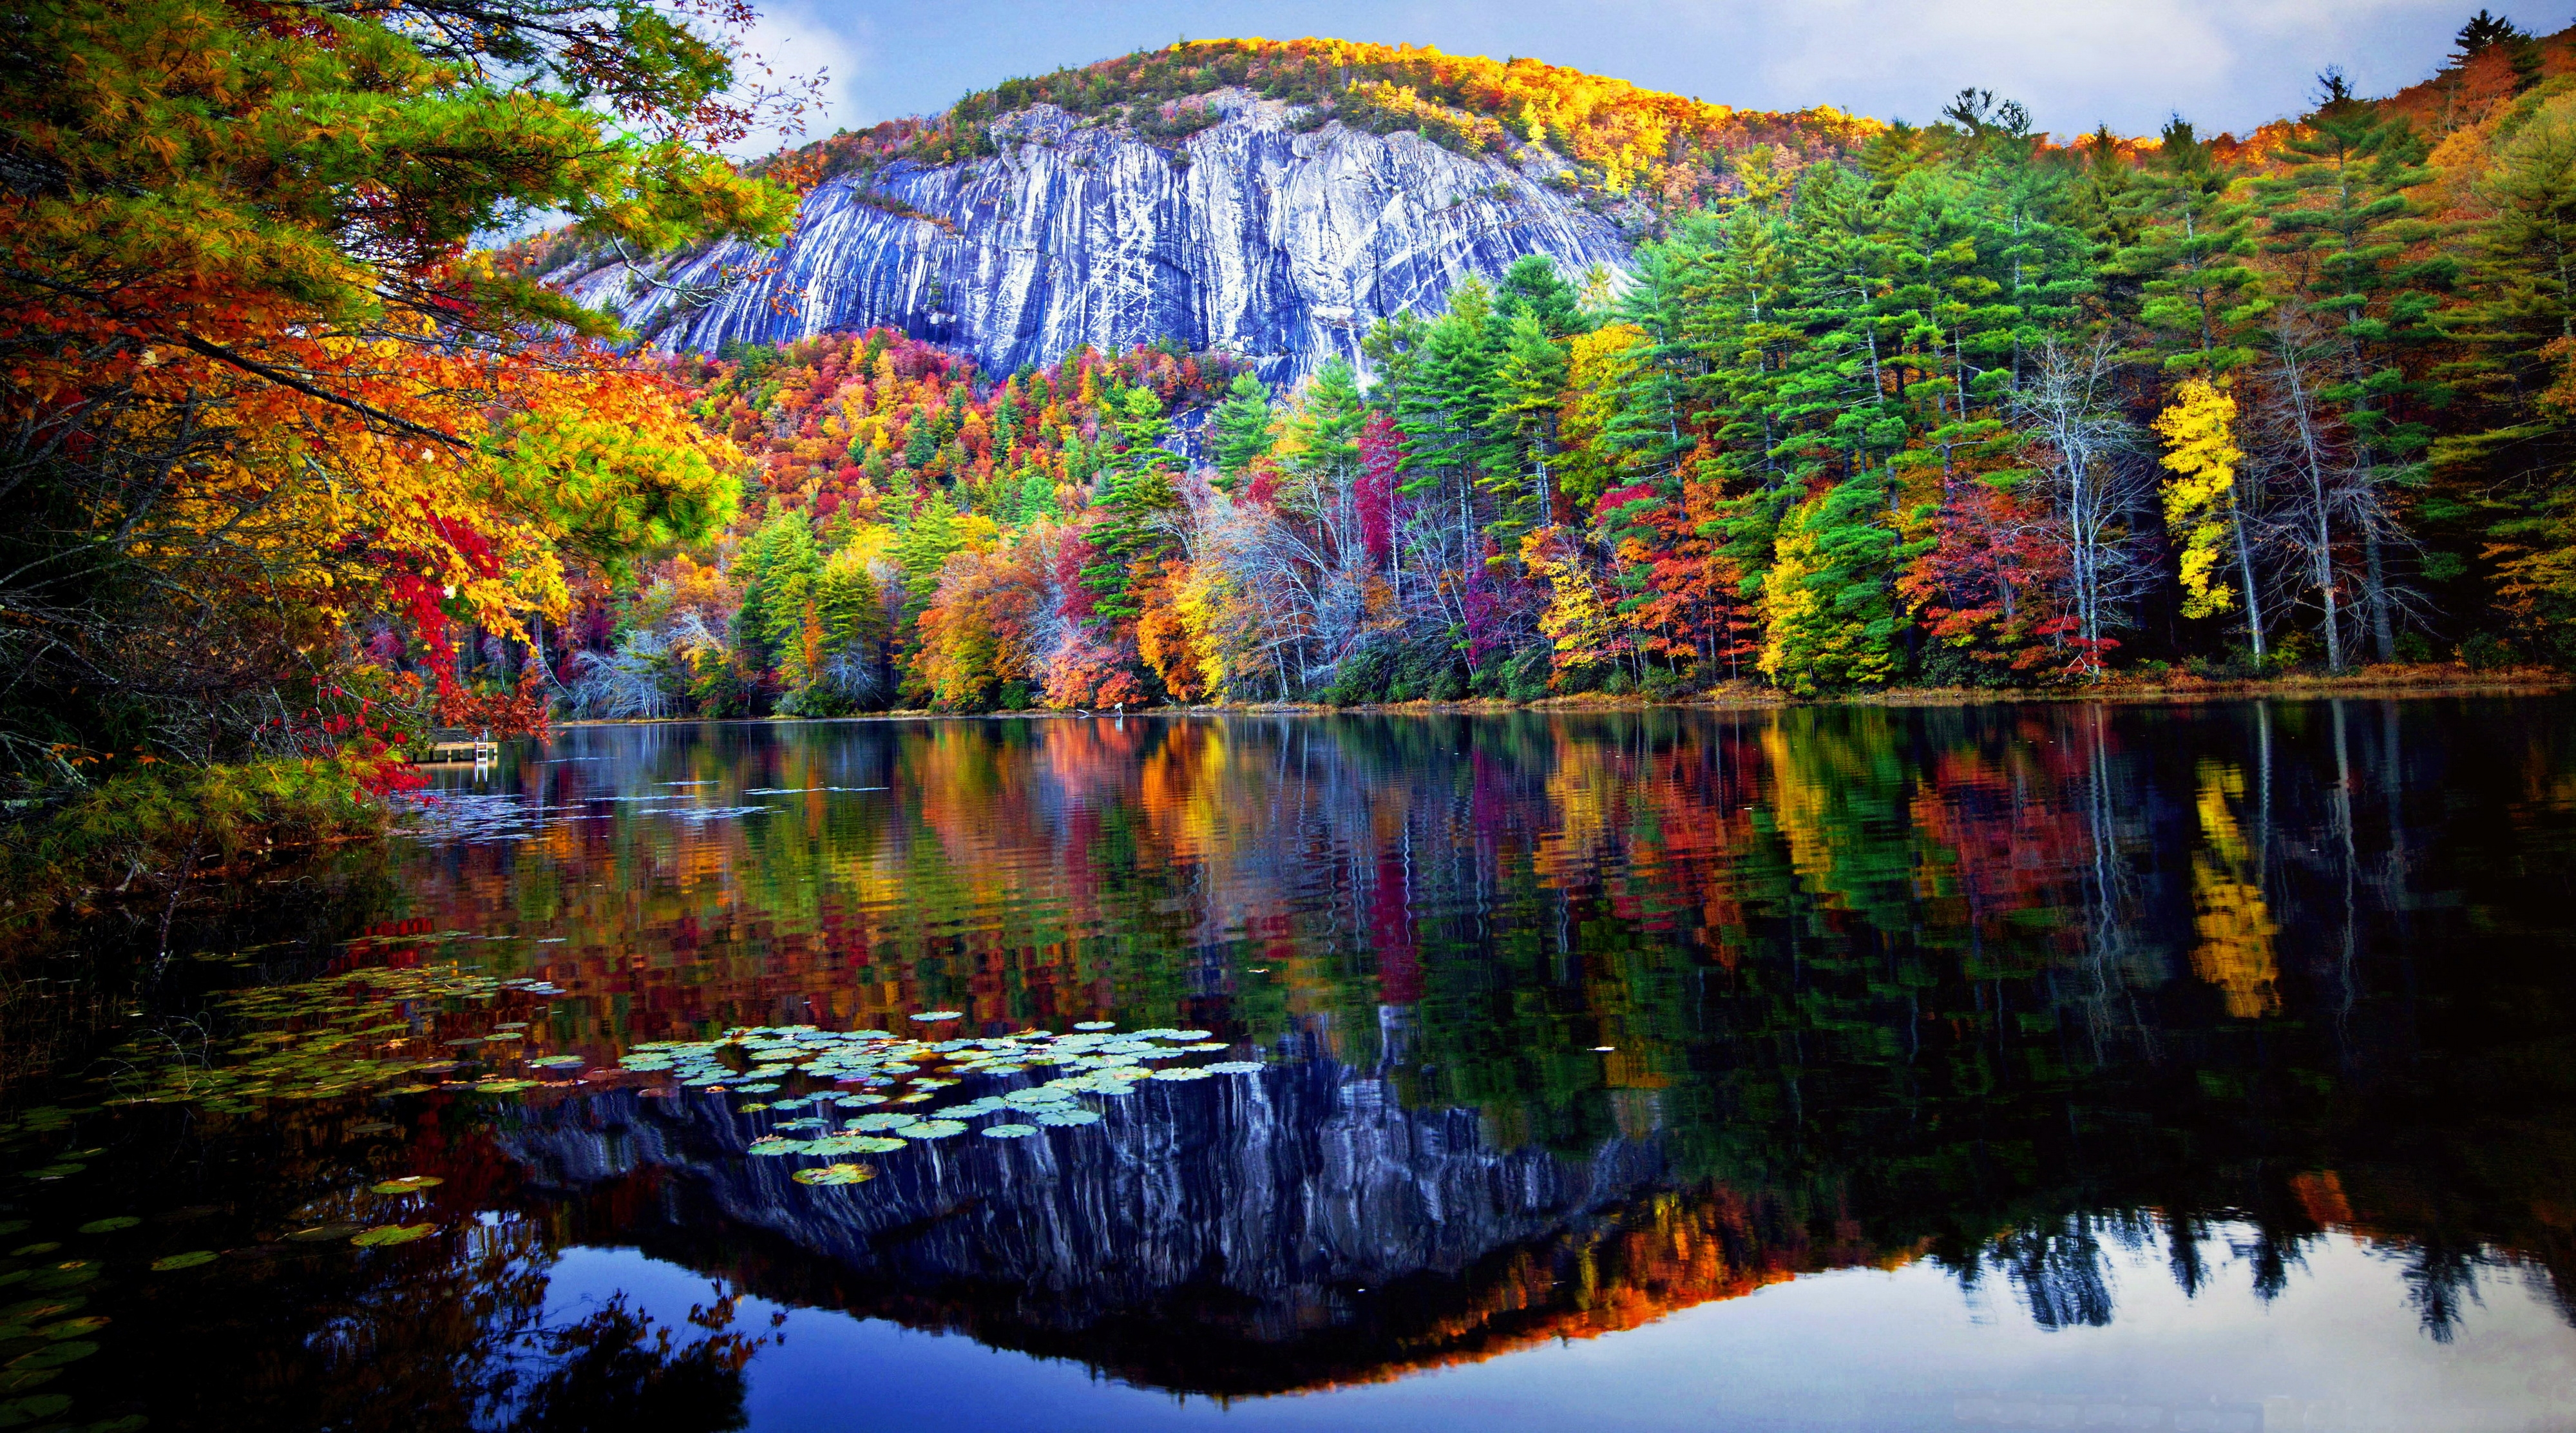 Fall Wallpaper 1080x1920 Autumn Forest Reflected In The Lake 4k Ultra Hd Wallpaper